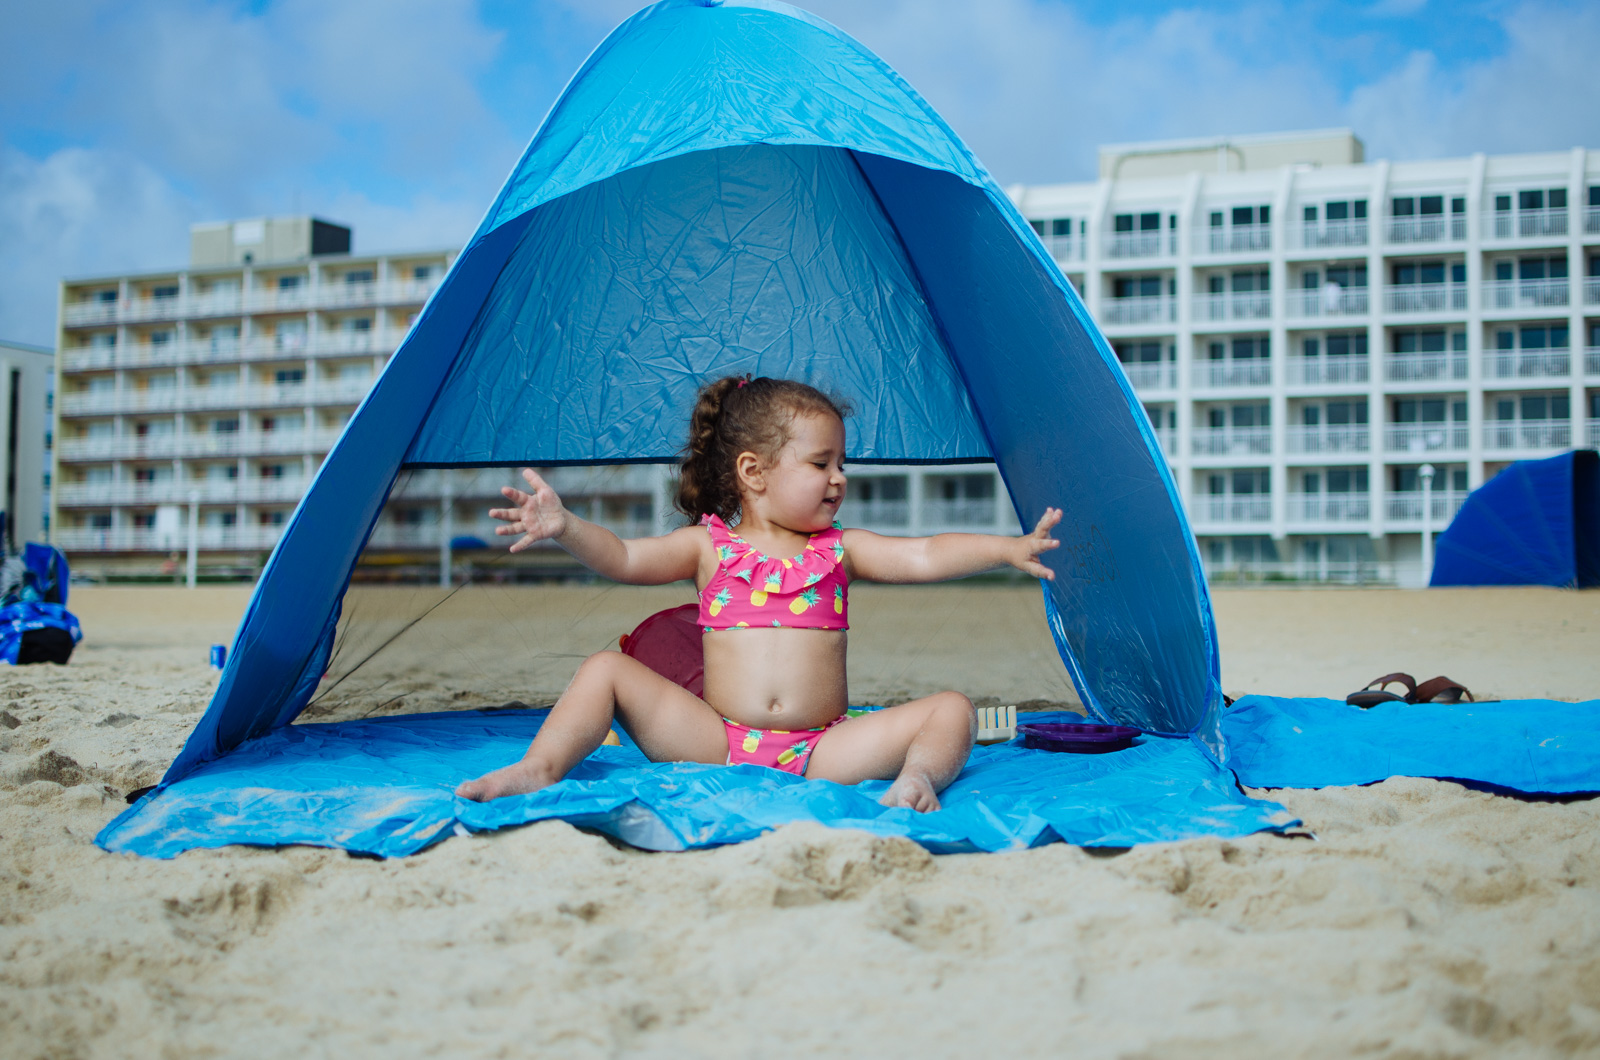 beach tips toddlers - top tips for taking toddlers to the beach. Check out these beach must-haves for kids! | bylaurenm.com